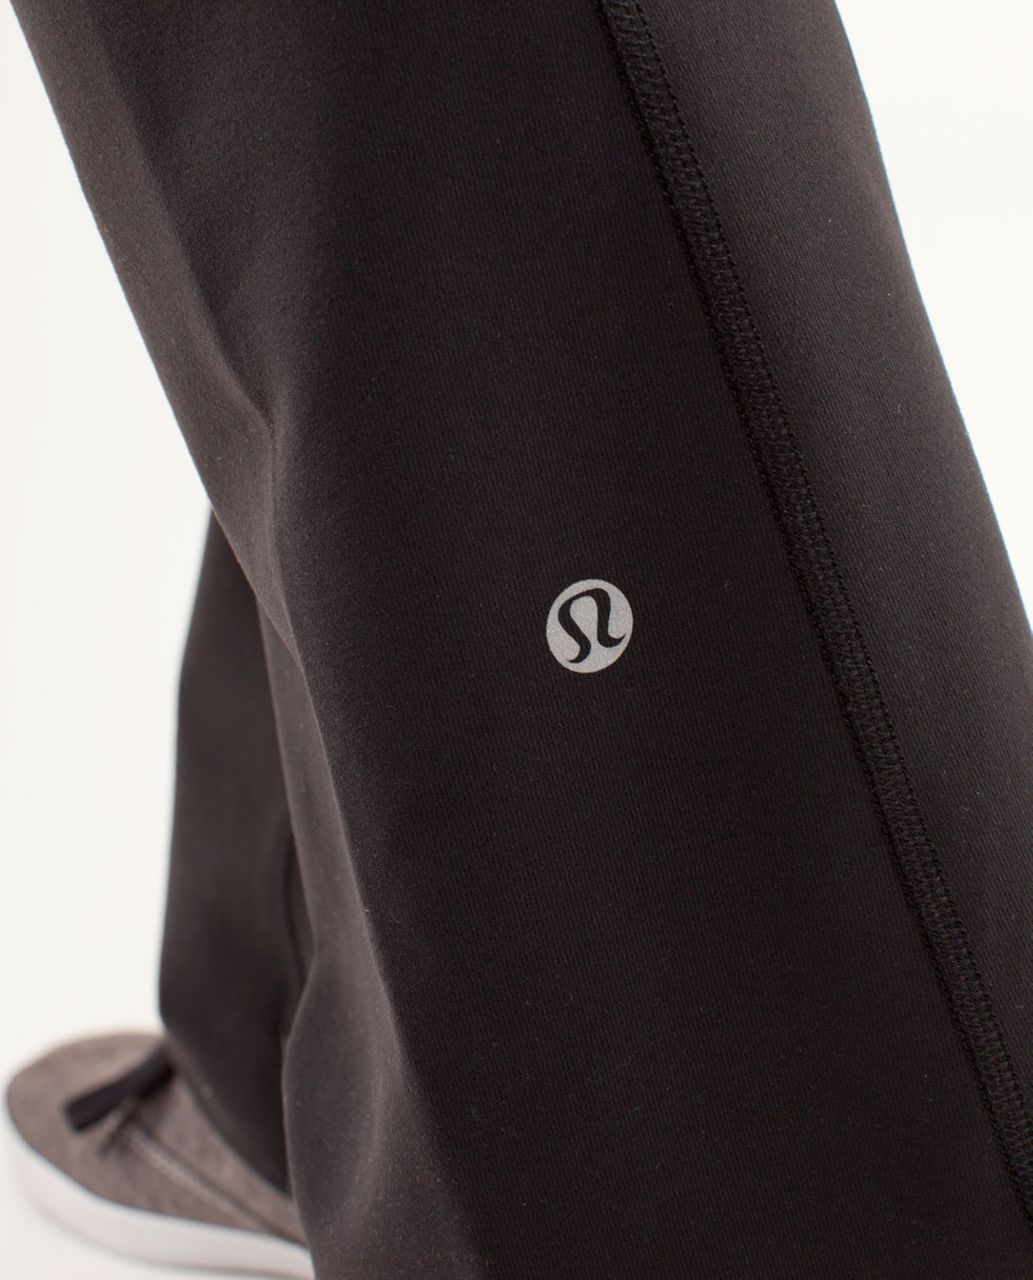 Lululemon Groove Pant *New (Regular) - Black / Quilt Spring13 6